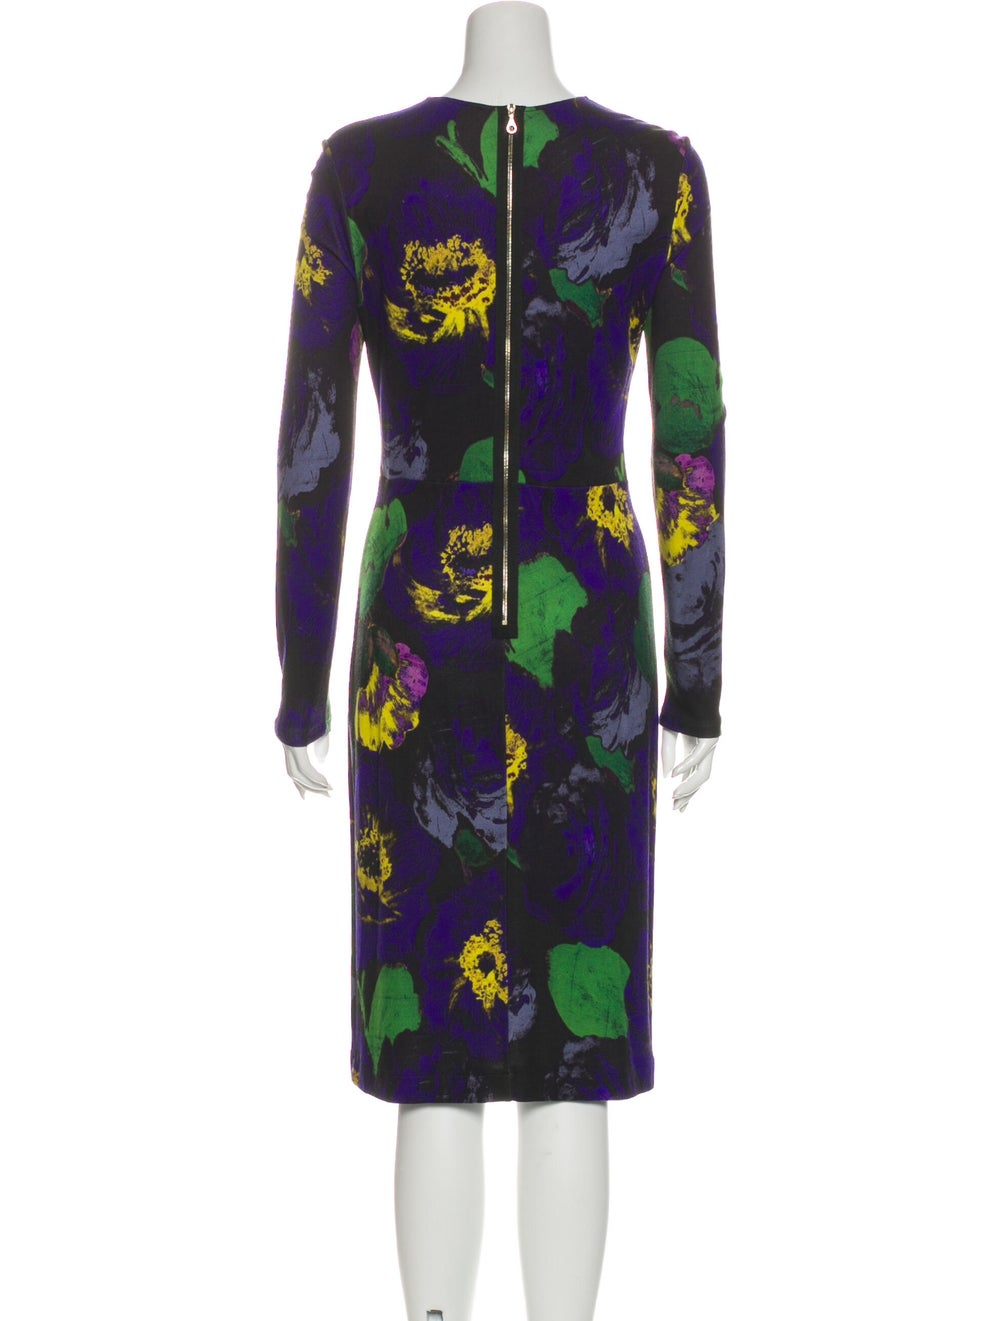 Erdem Printed Midi Length Dress Blue - image 3